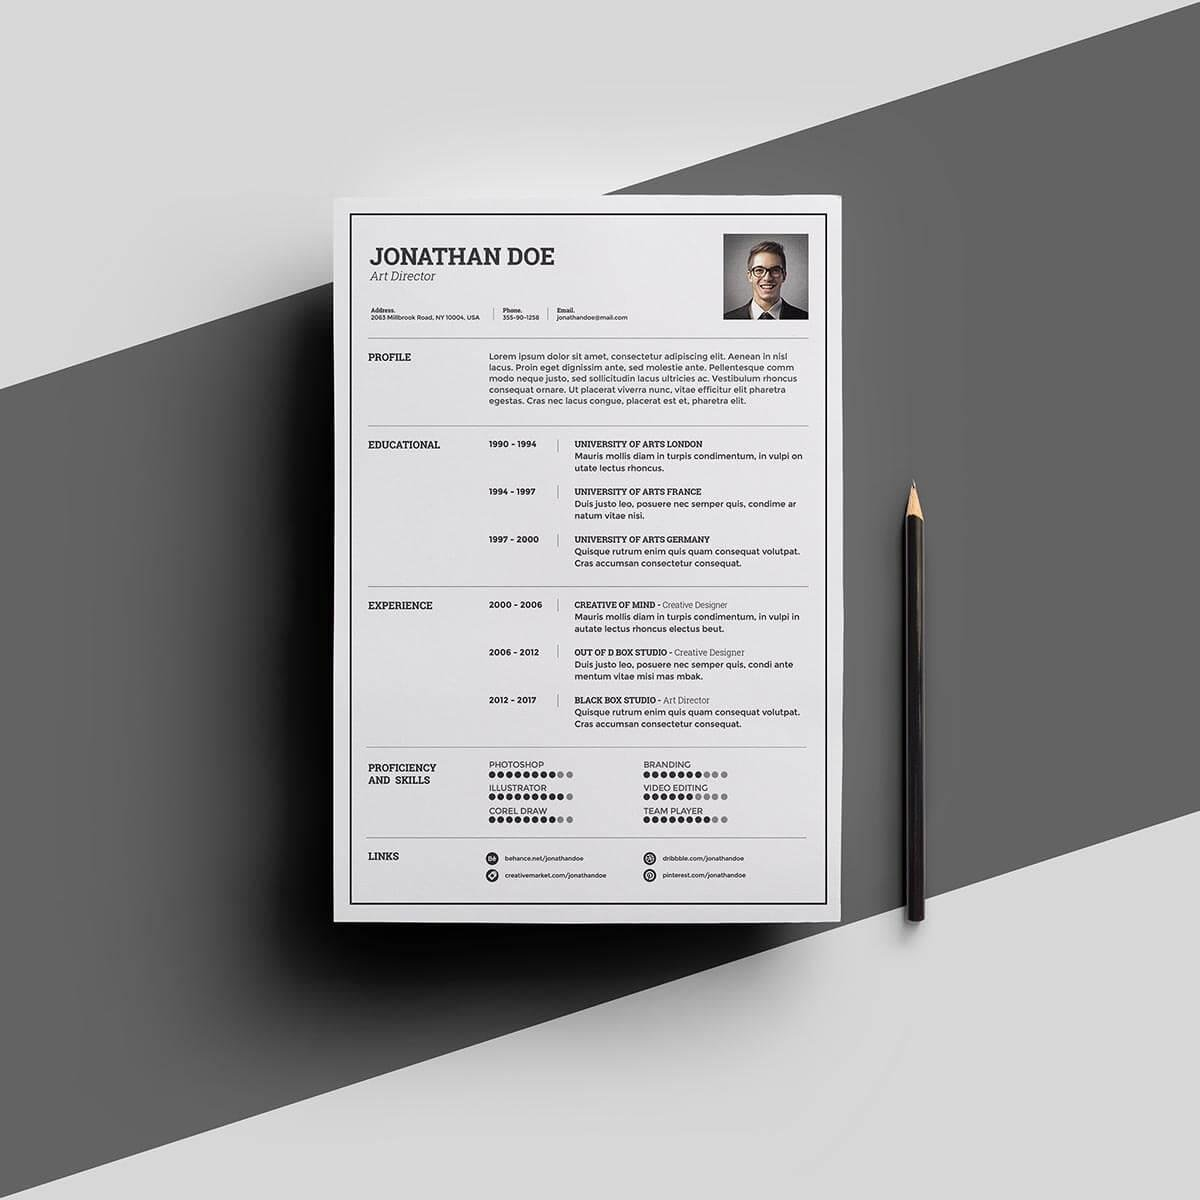 Ten Great Free Resume Templates Microsoft Word Download Links: One-Page Resume Templates: 15 Examples To Download And Use Now